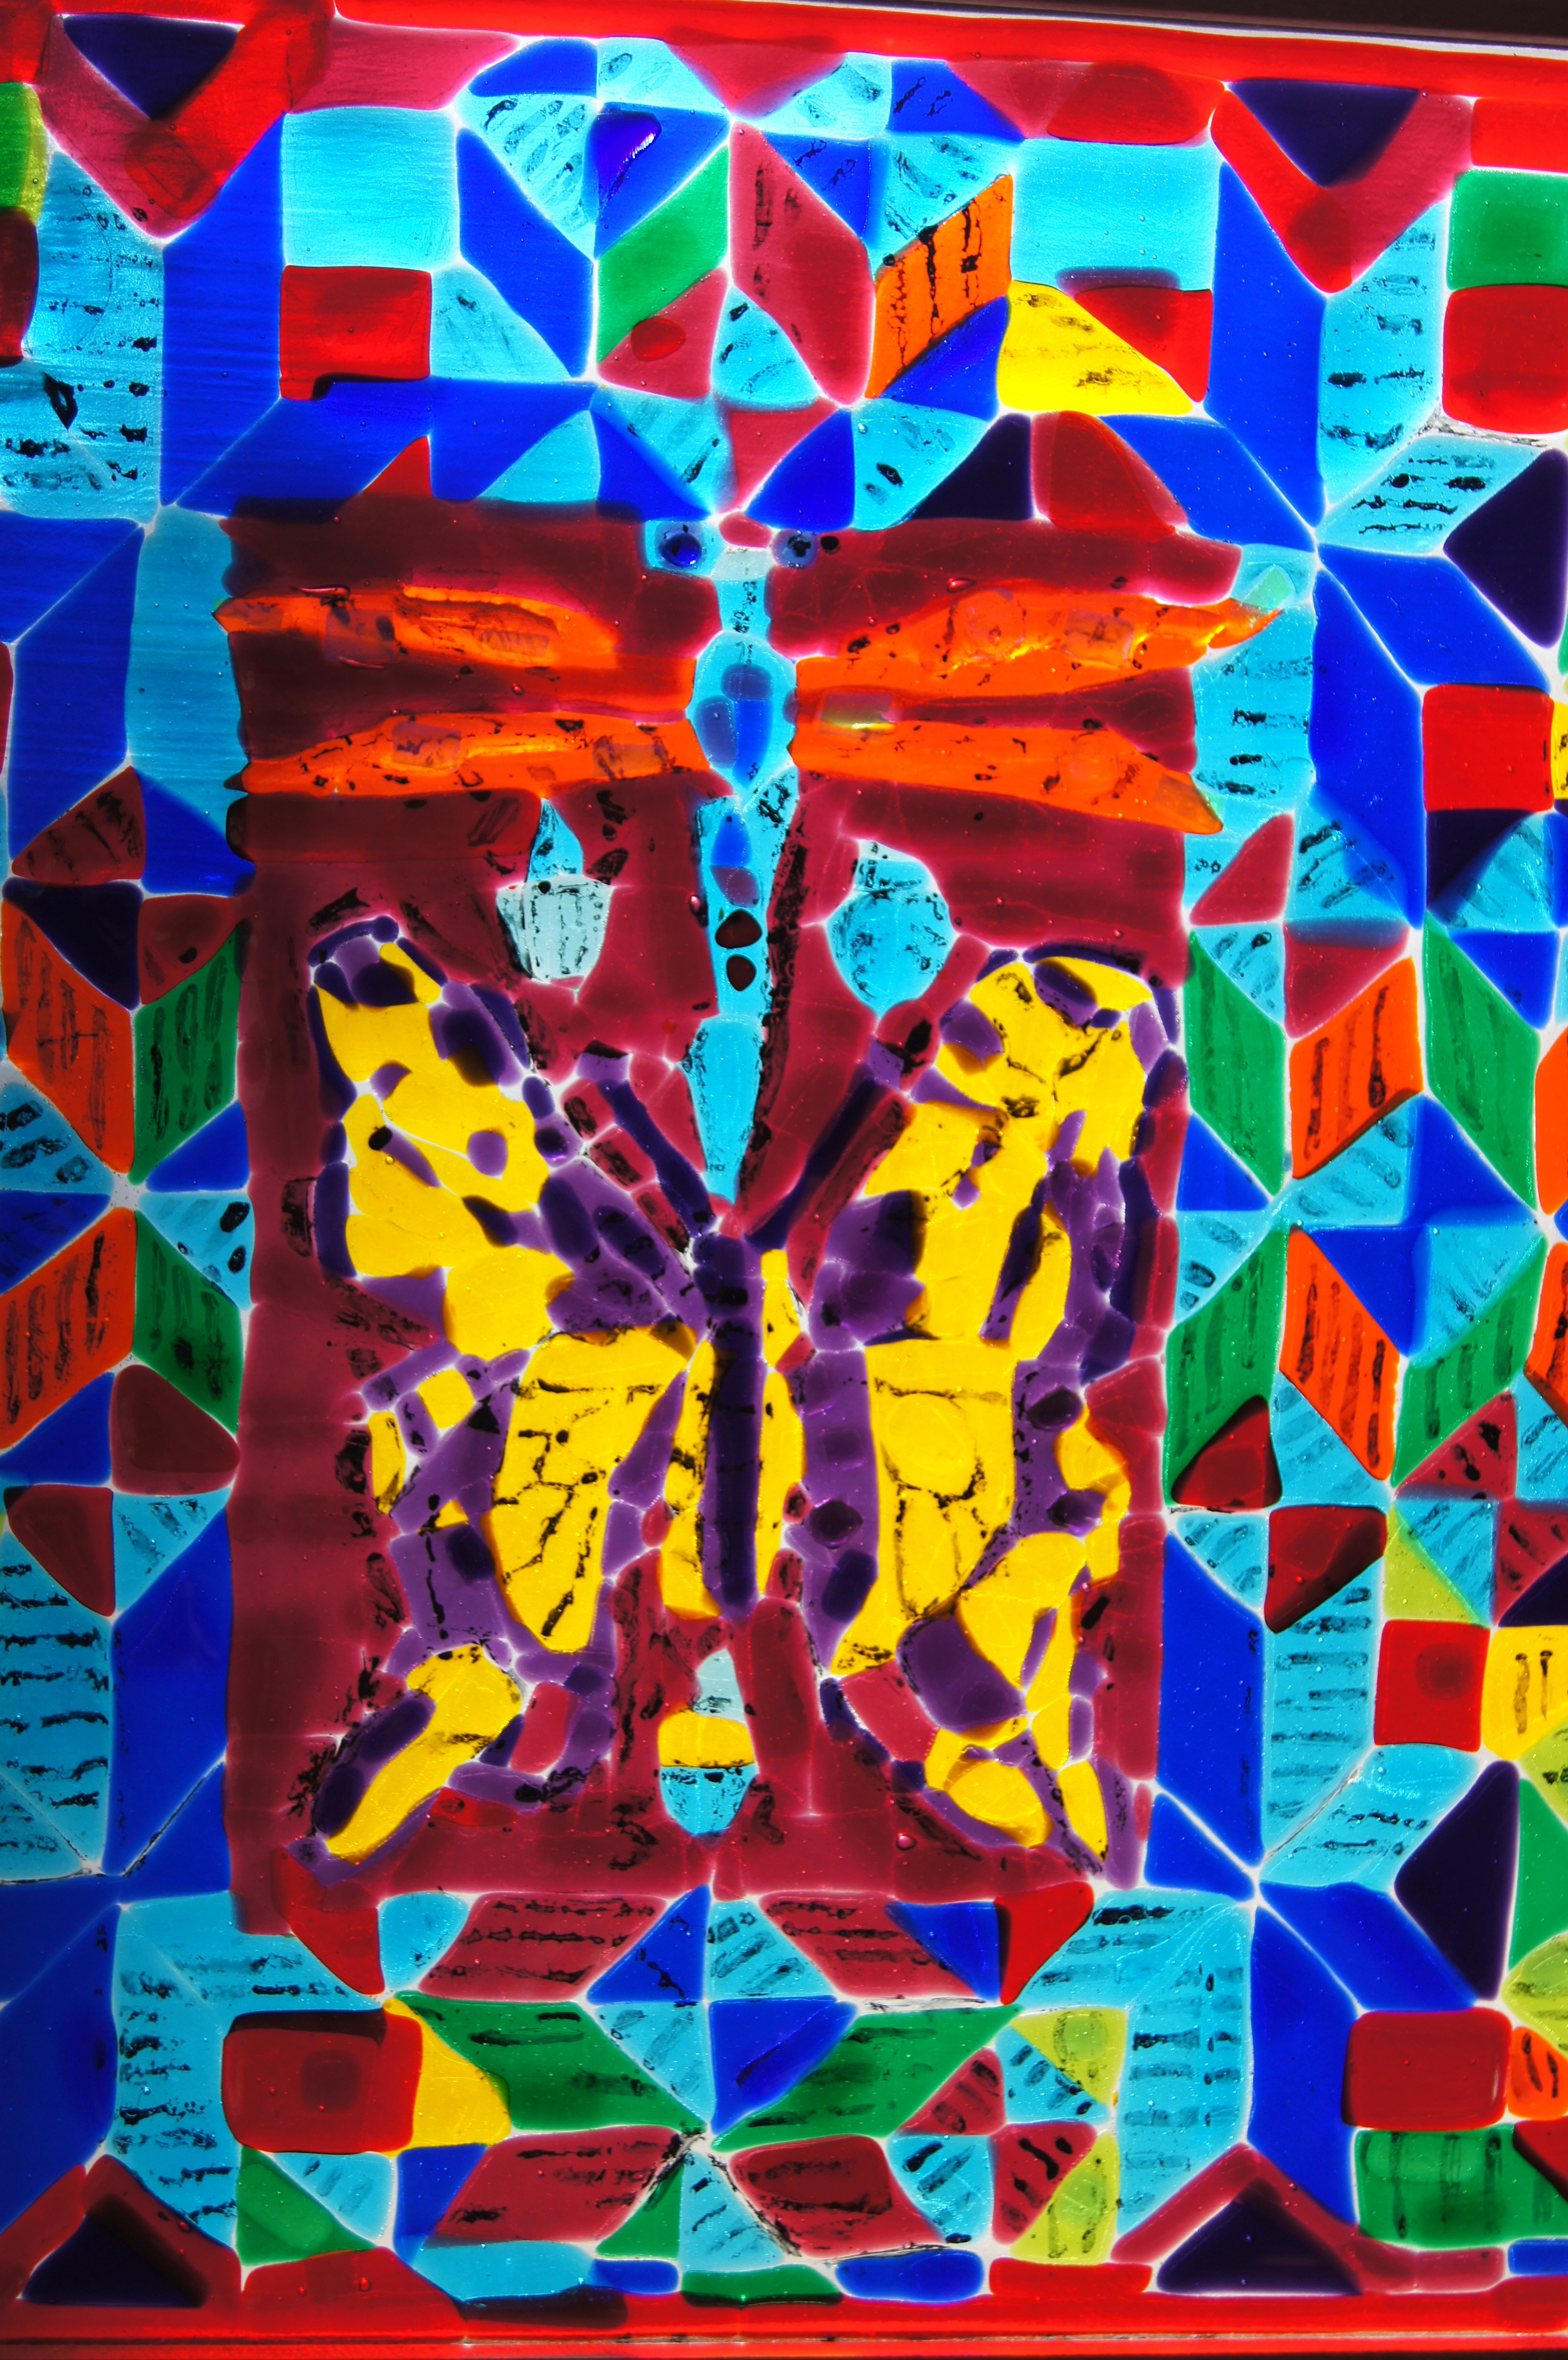 Fused_glass_butterfly 2-18-2013 12-27-29 PM 3264x4912.JPG